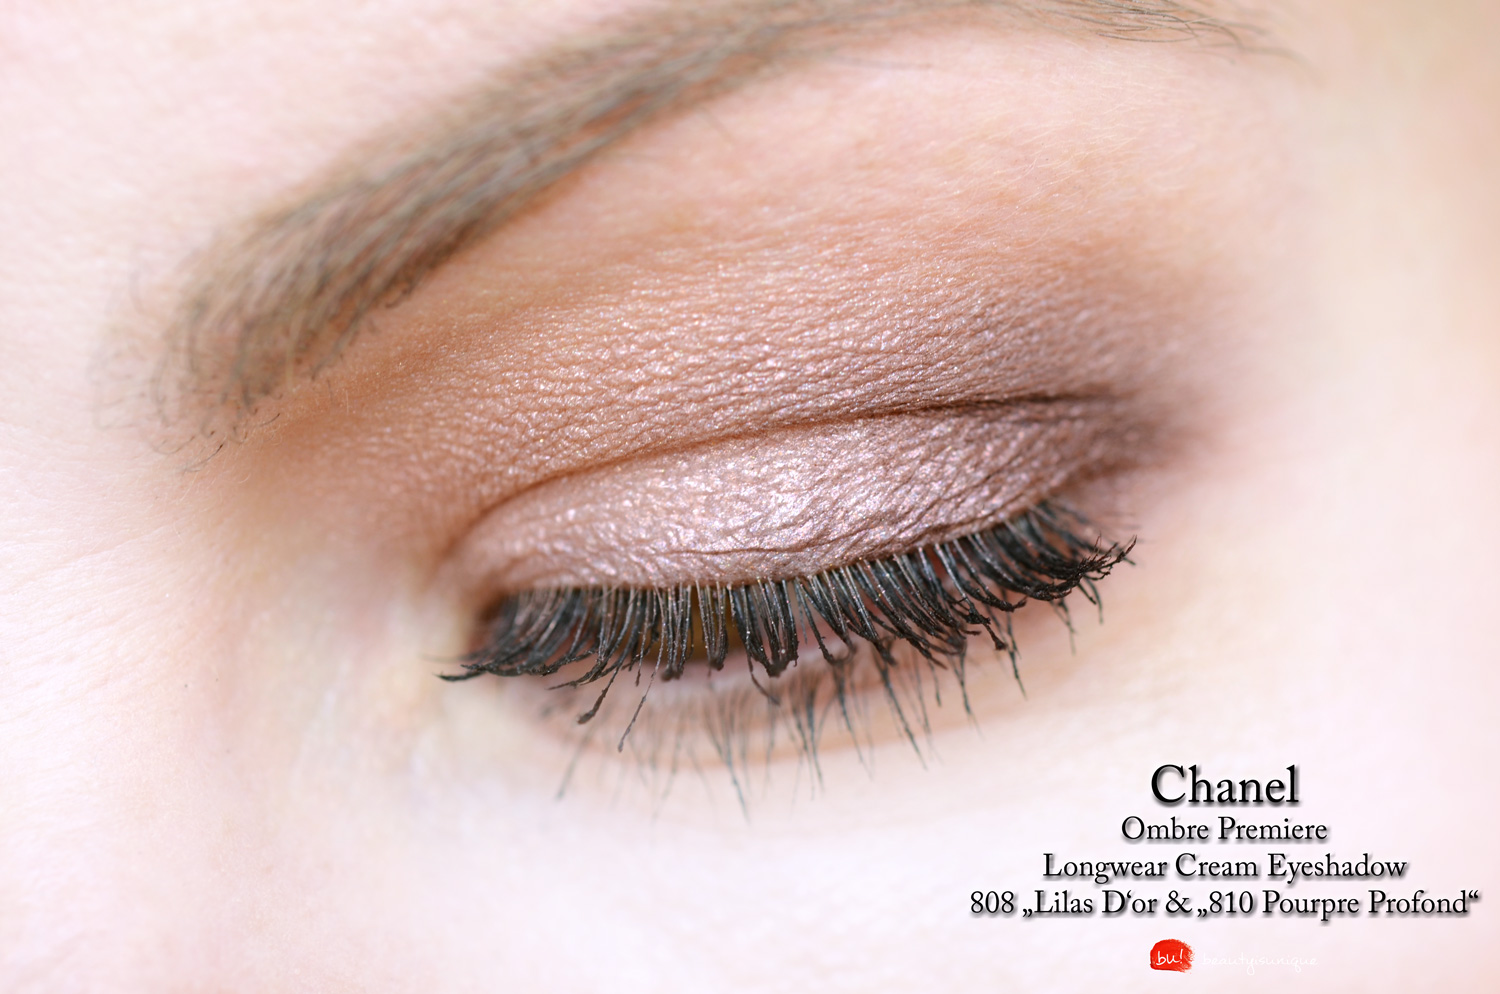 chanel-lilas-d'or-swatches